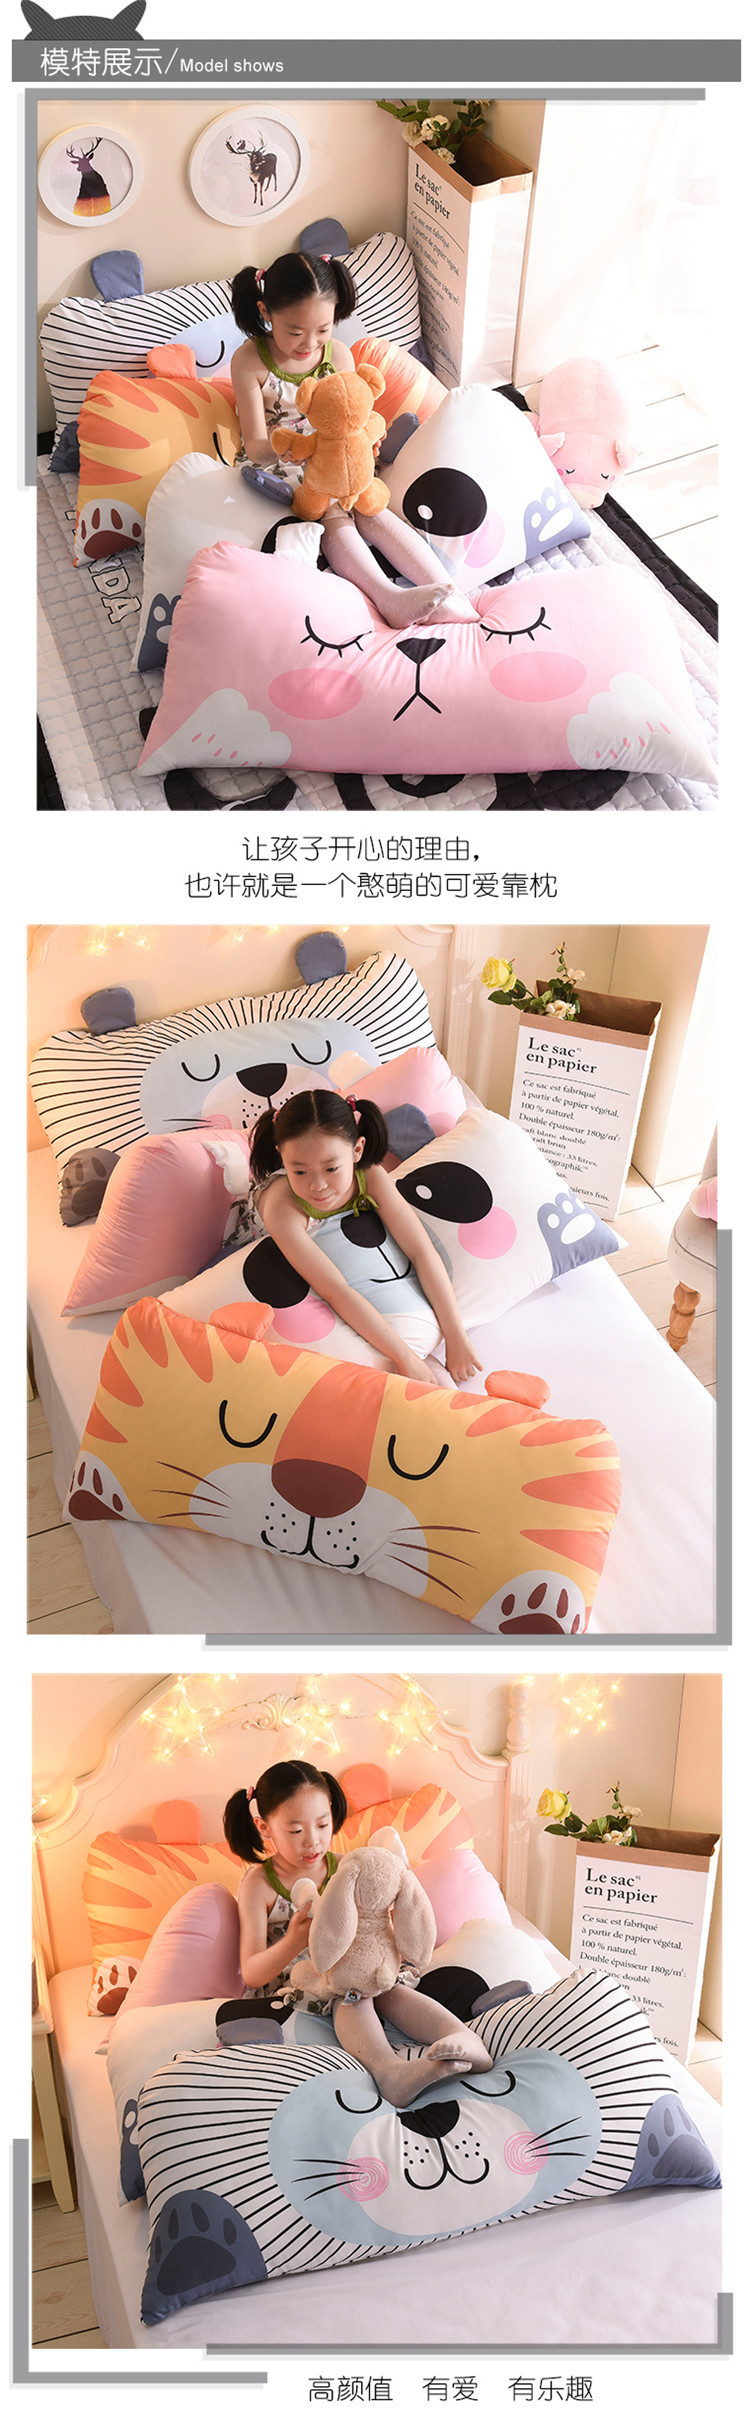 Cartoon Double Pillows Cotton Linen Backrest Cushion For Sofa Cushions For Bed Rest Pillow Back Support Large Size